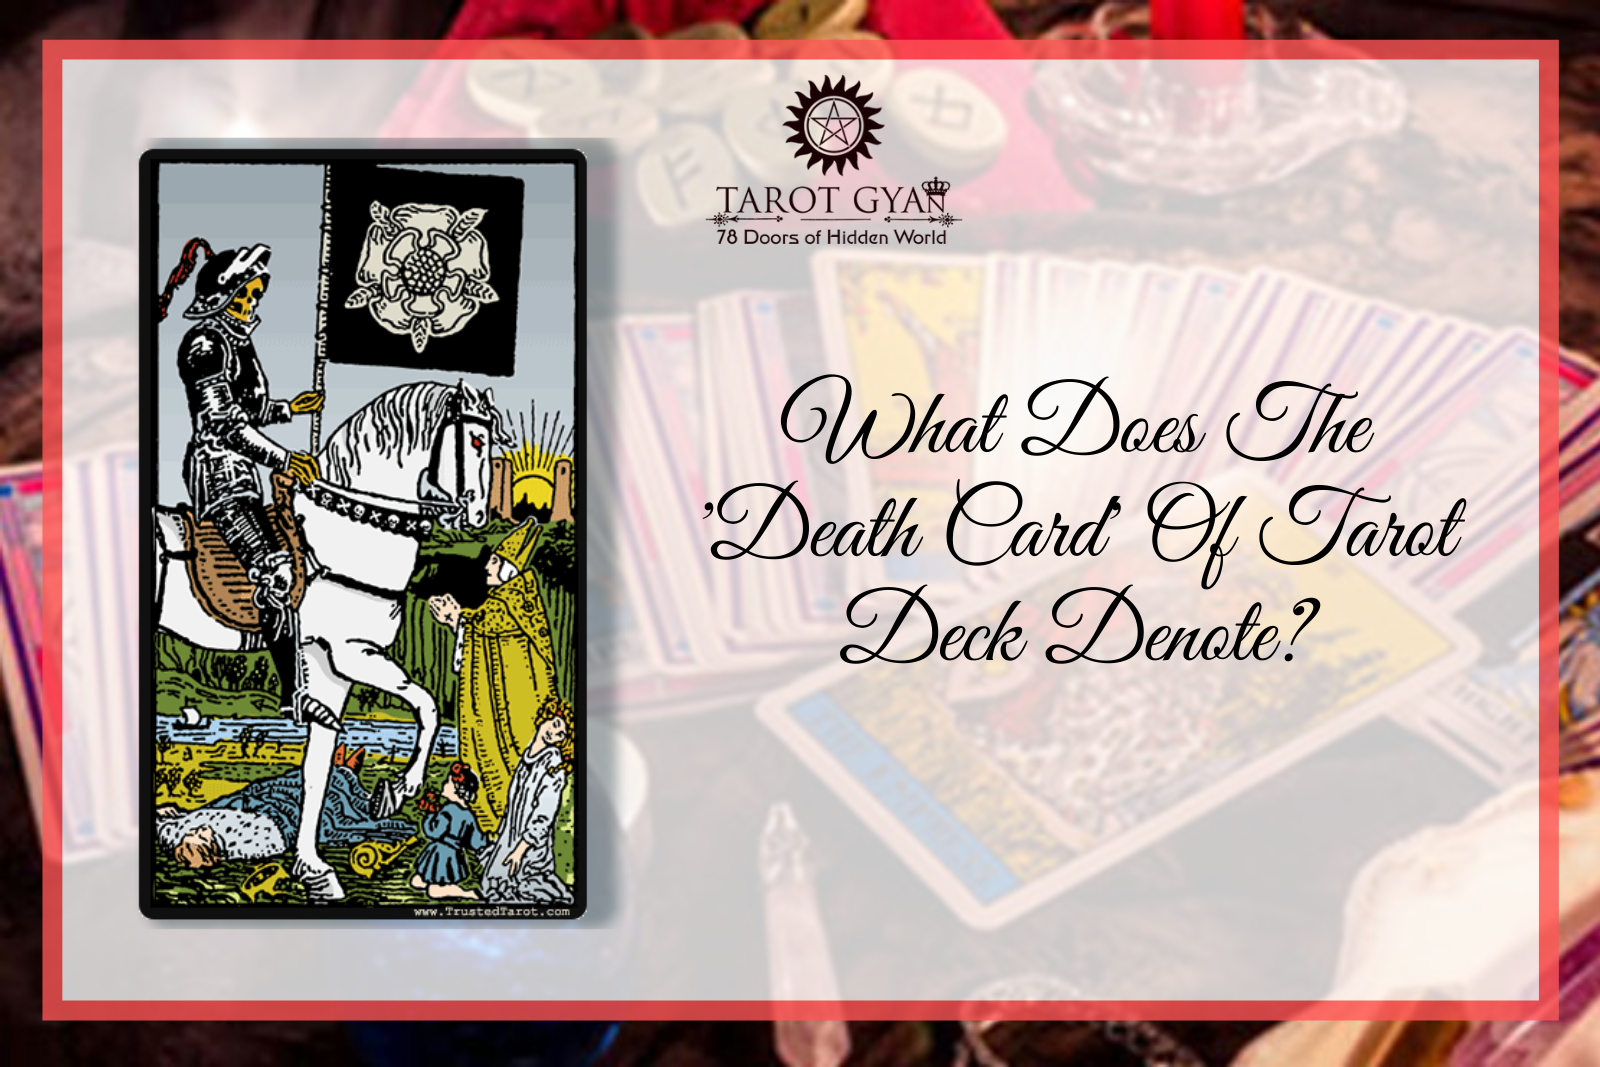 What Does The 'Death Card' Of Tarot Deck Denote?